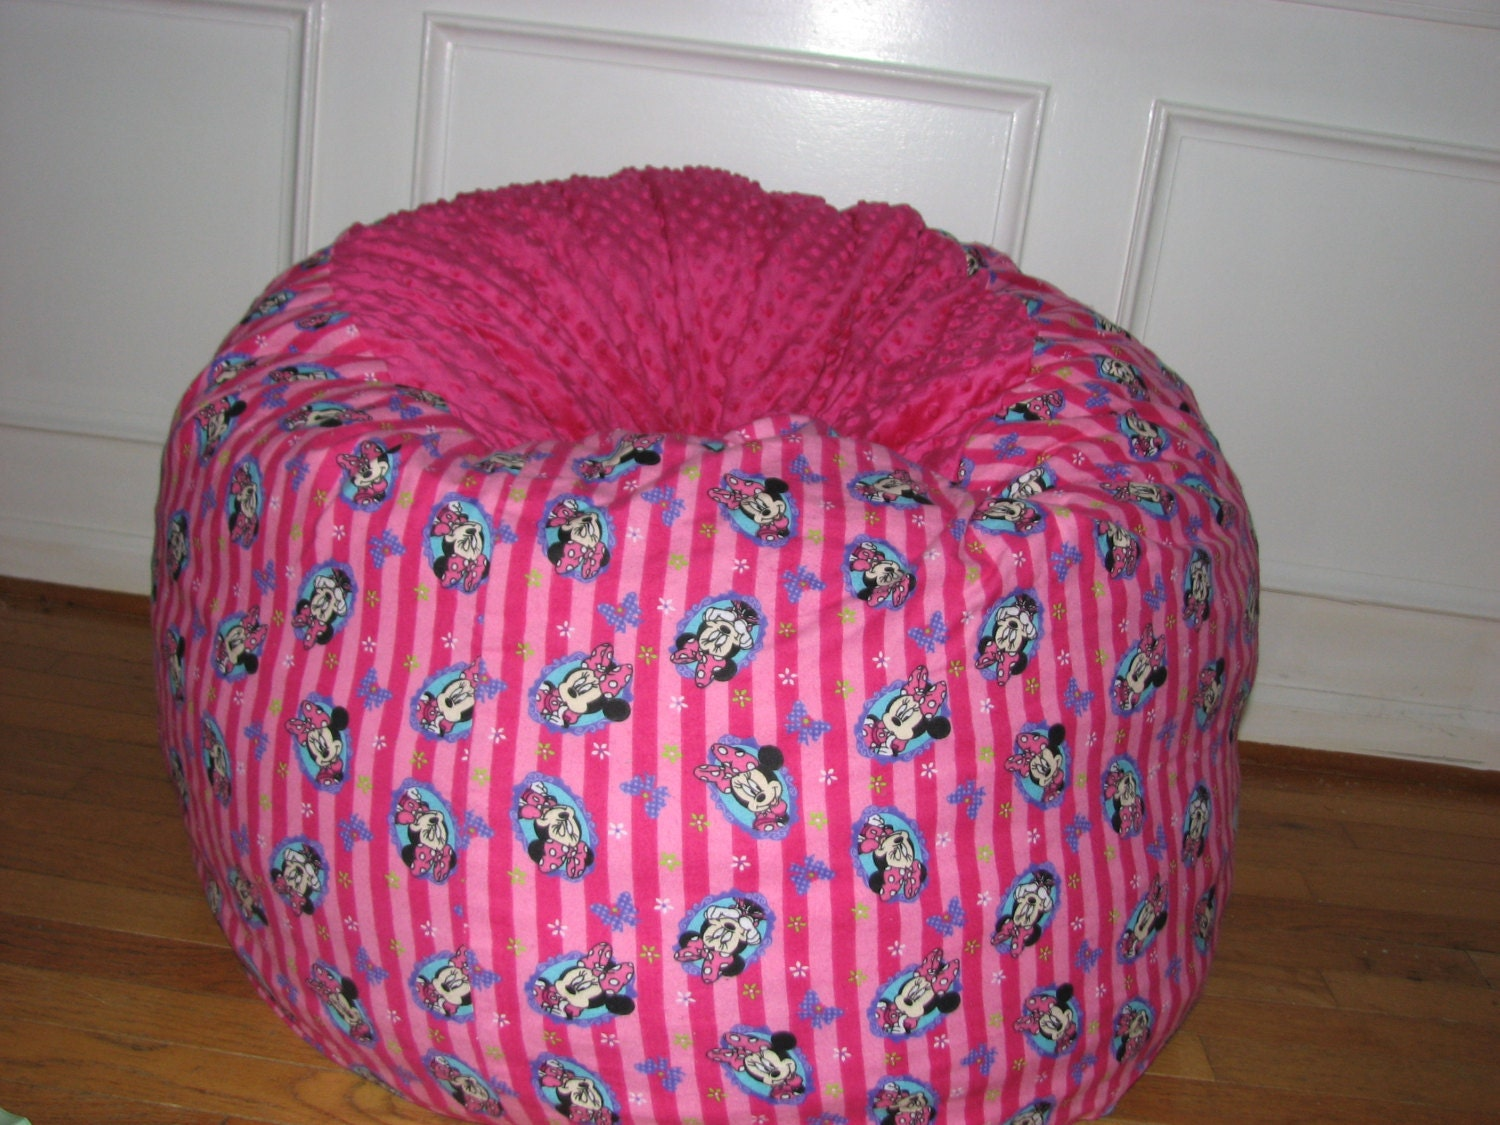 Minnie Mouse Lovesac Bean Bag Chair Cover By Soupeduppbkids